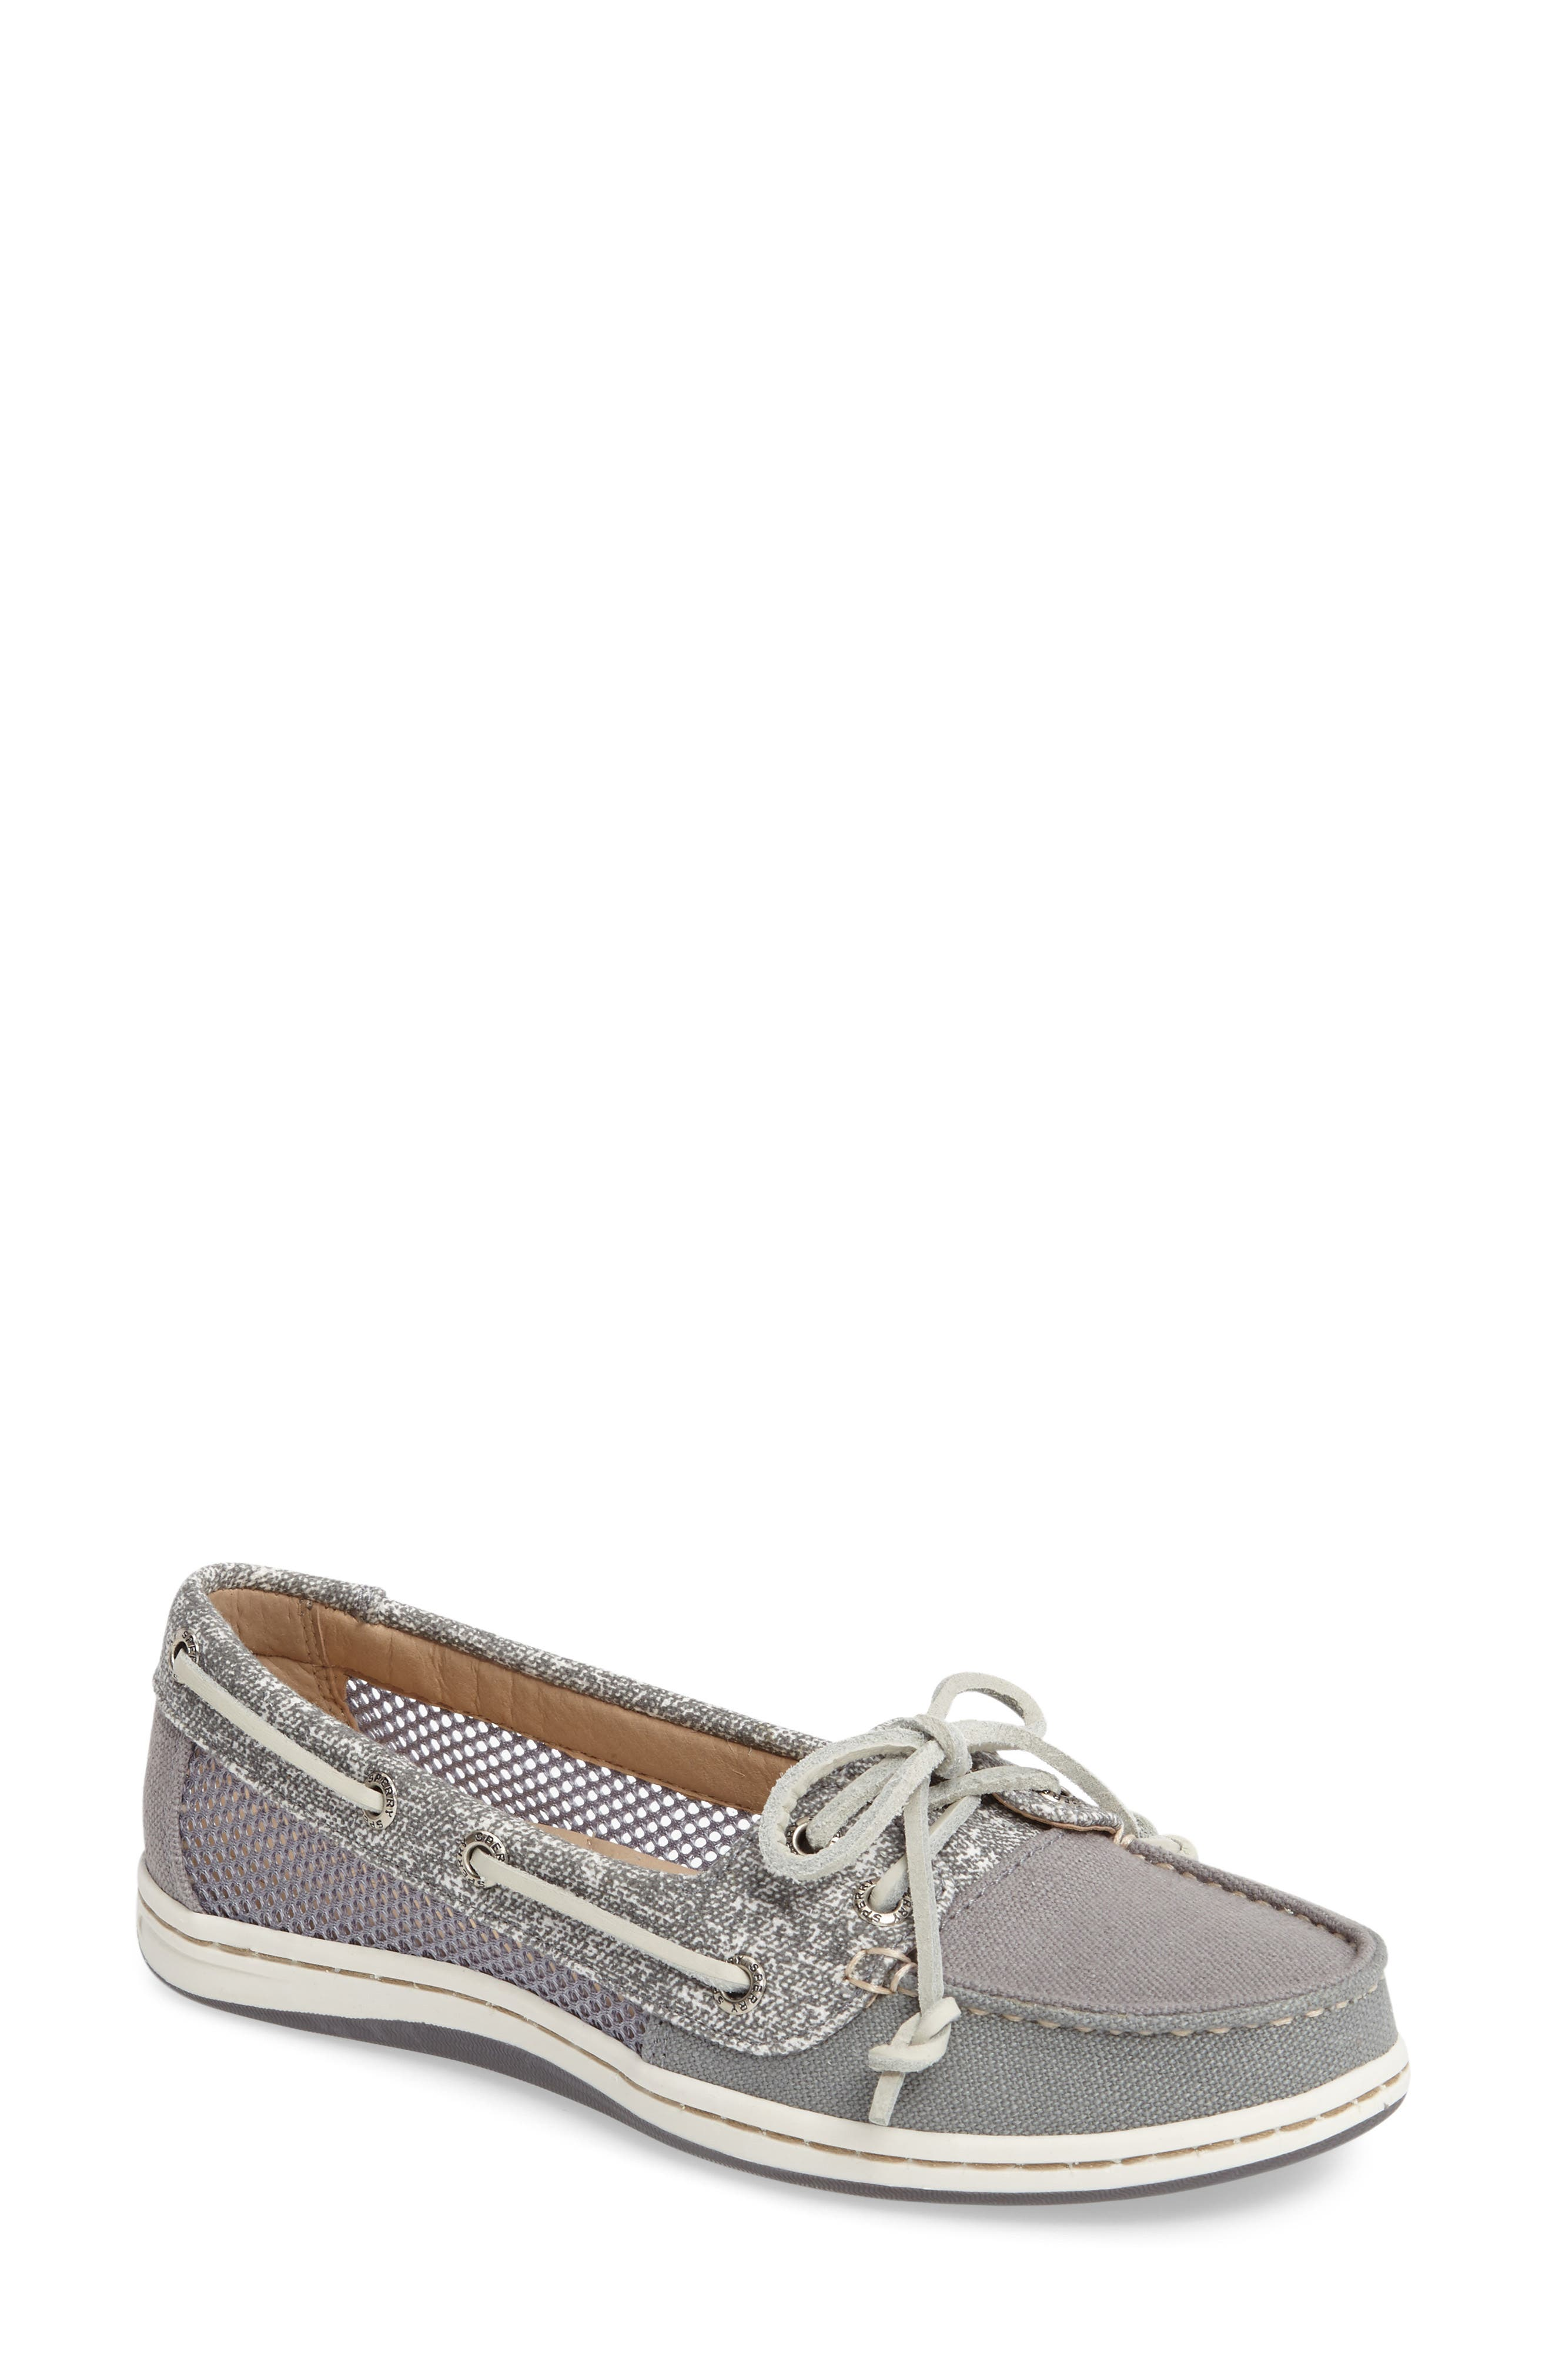 'Firefish' Boat Shoe,                             Main thumbnail 4, color,